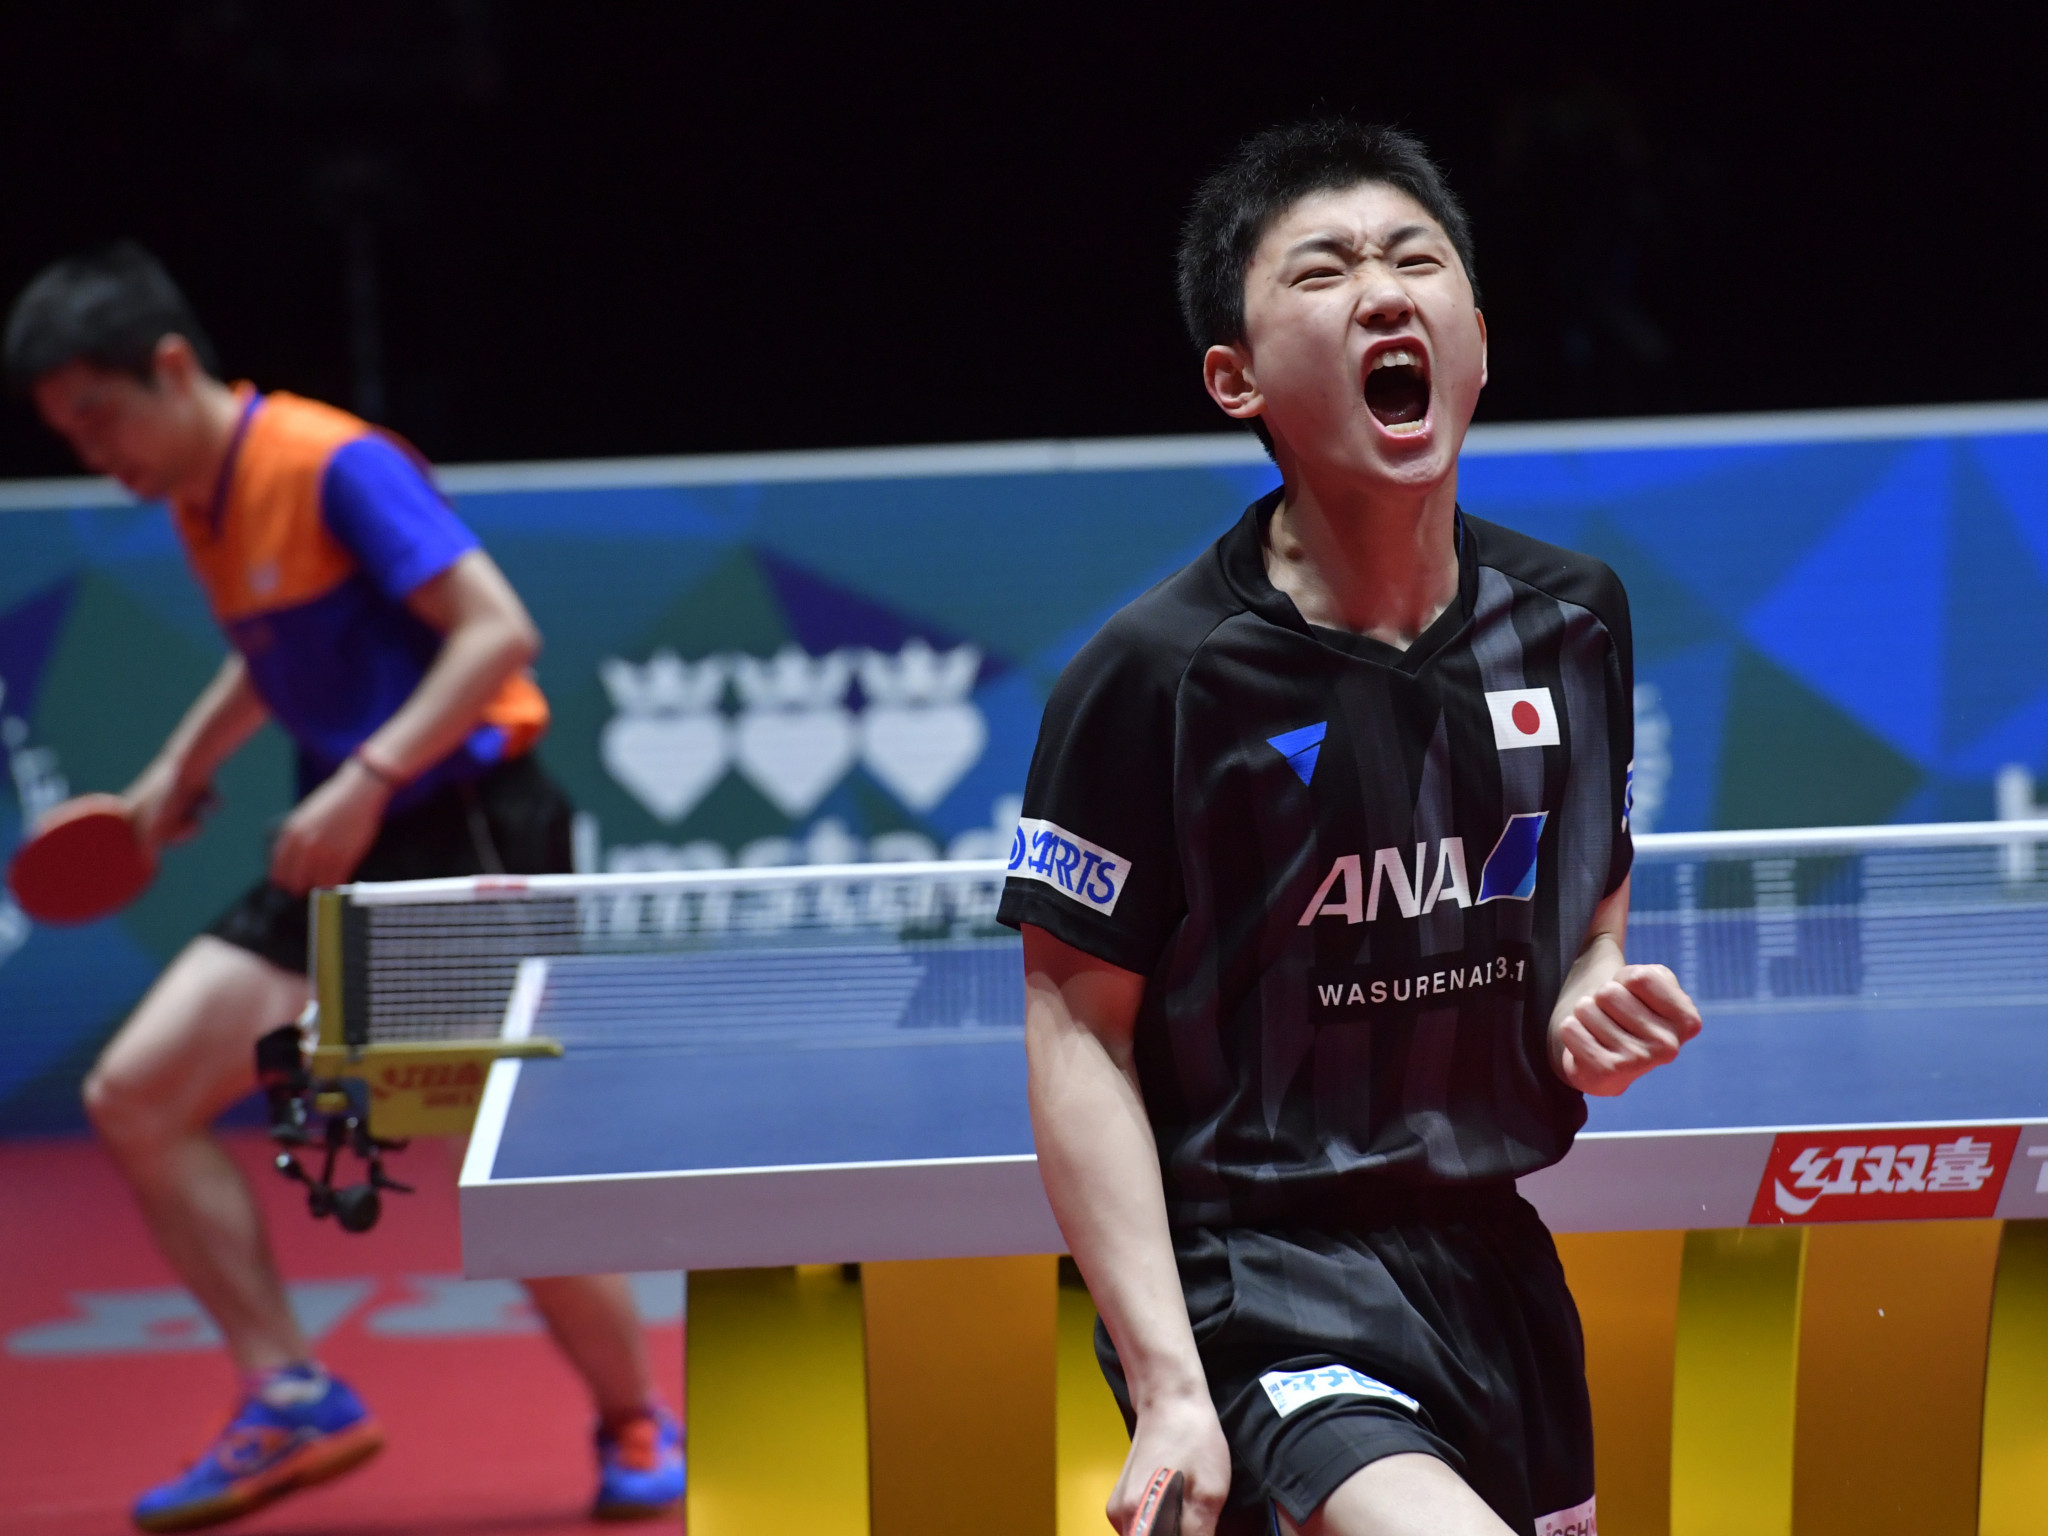 ITTF announce new dates of World Team Table Tennis Championships